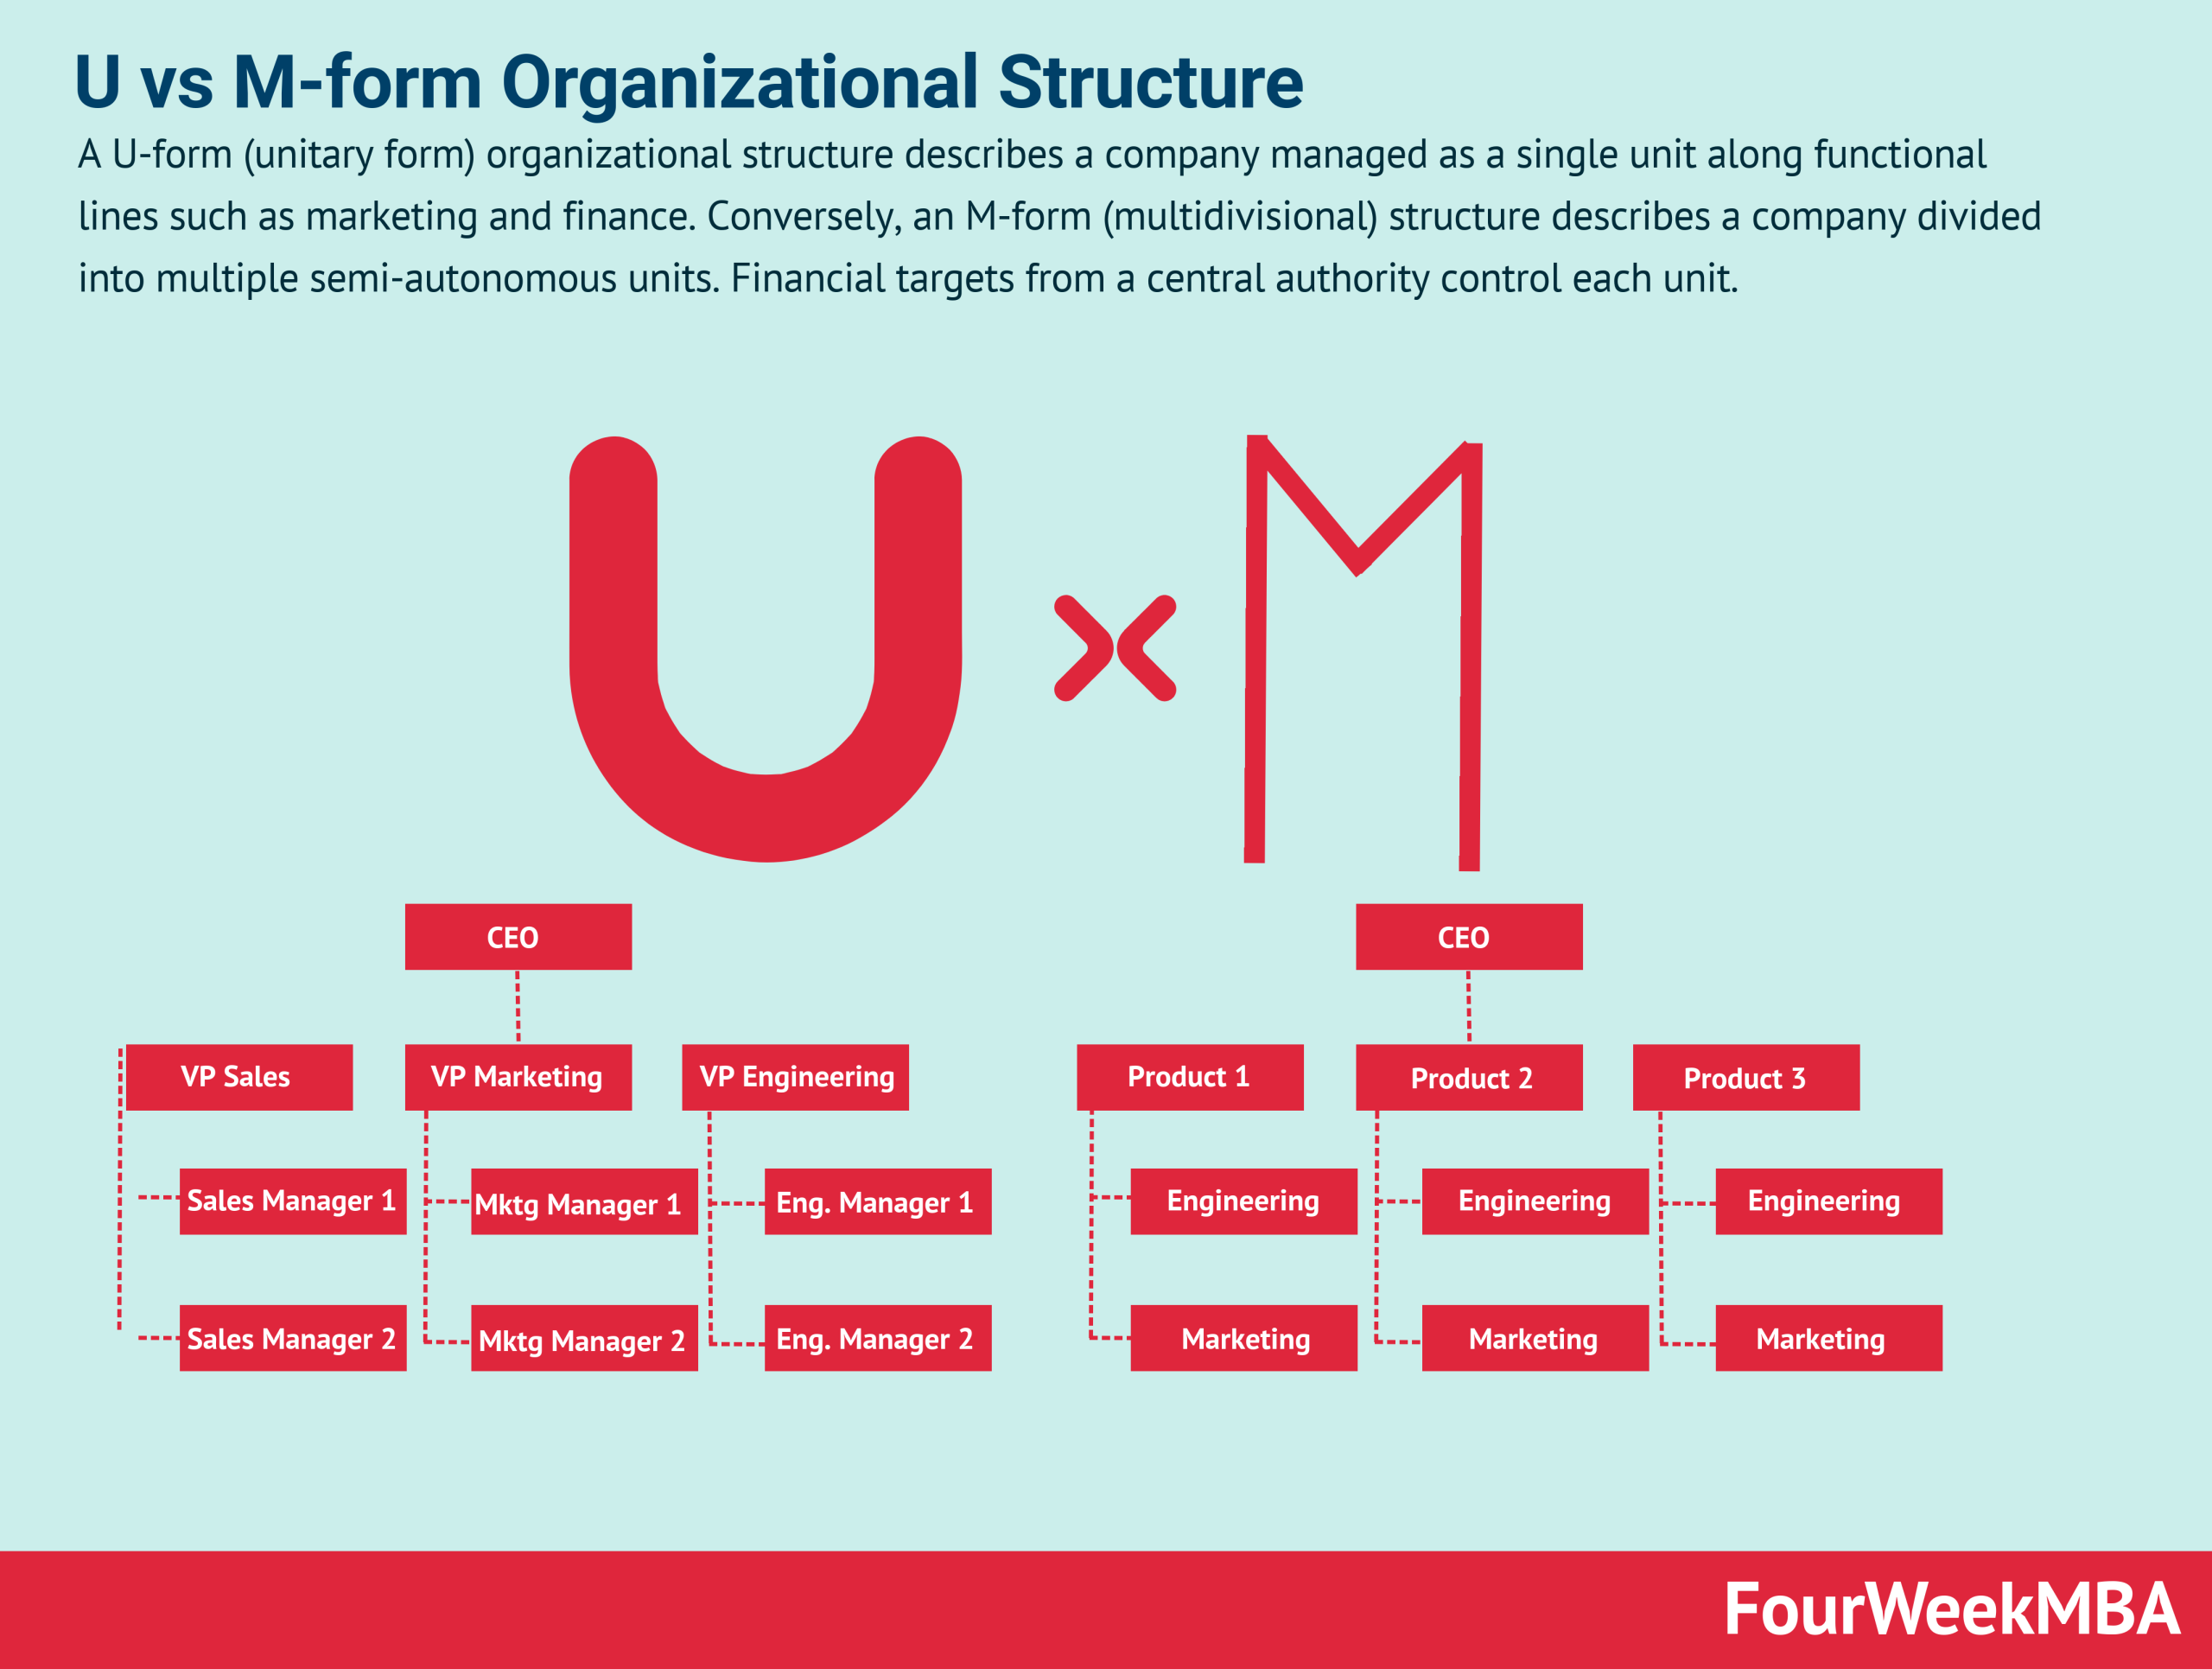 u-vs-m-form-organizational-structure